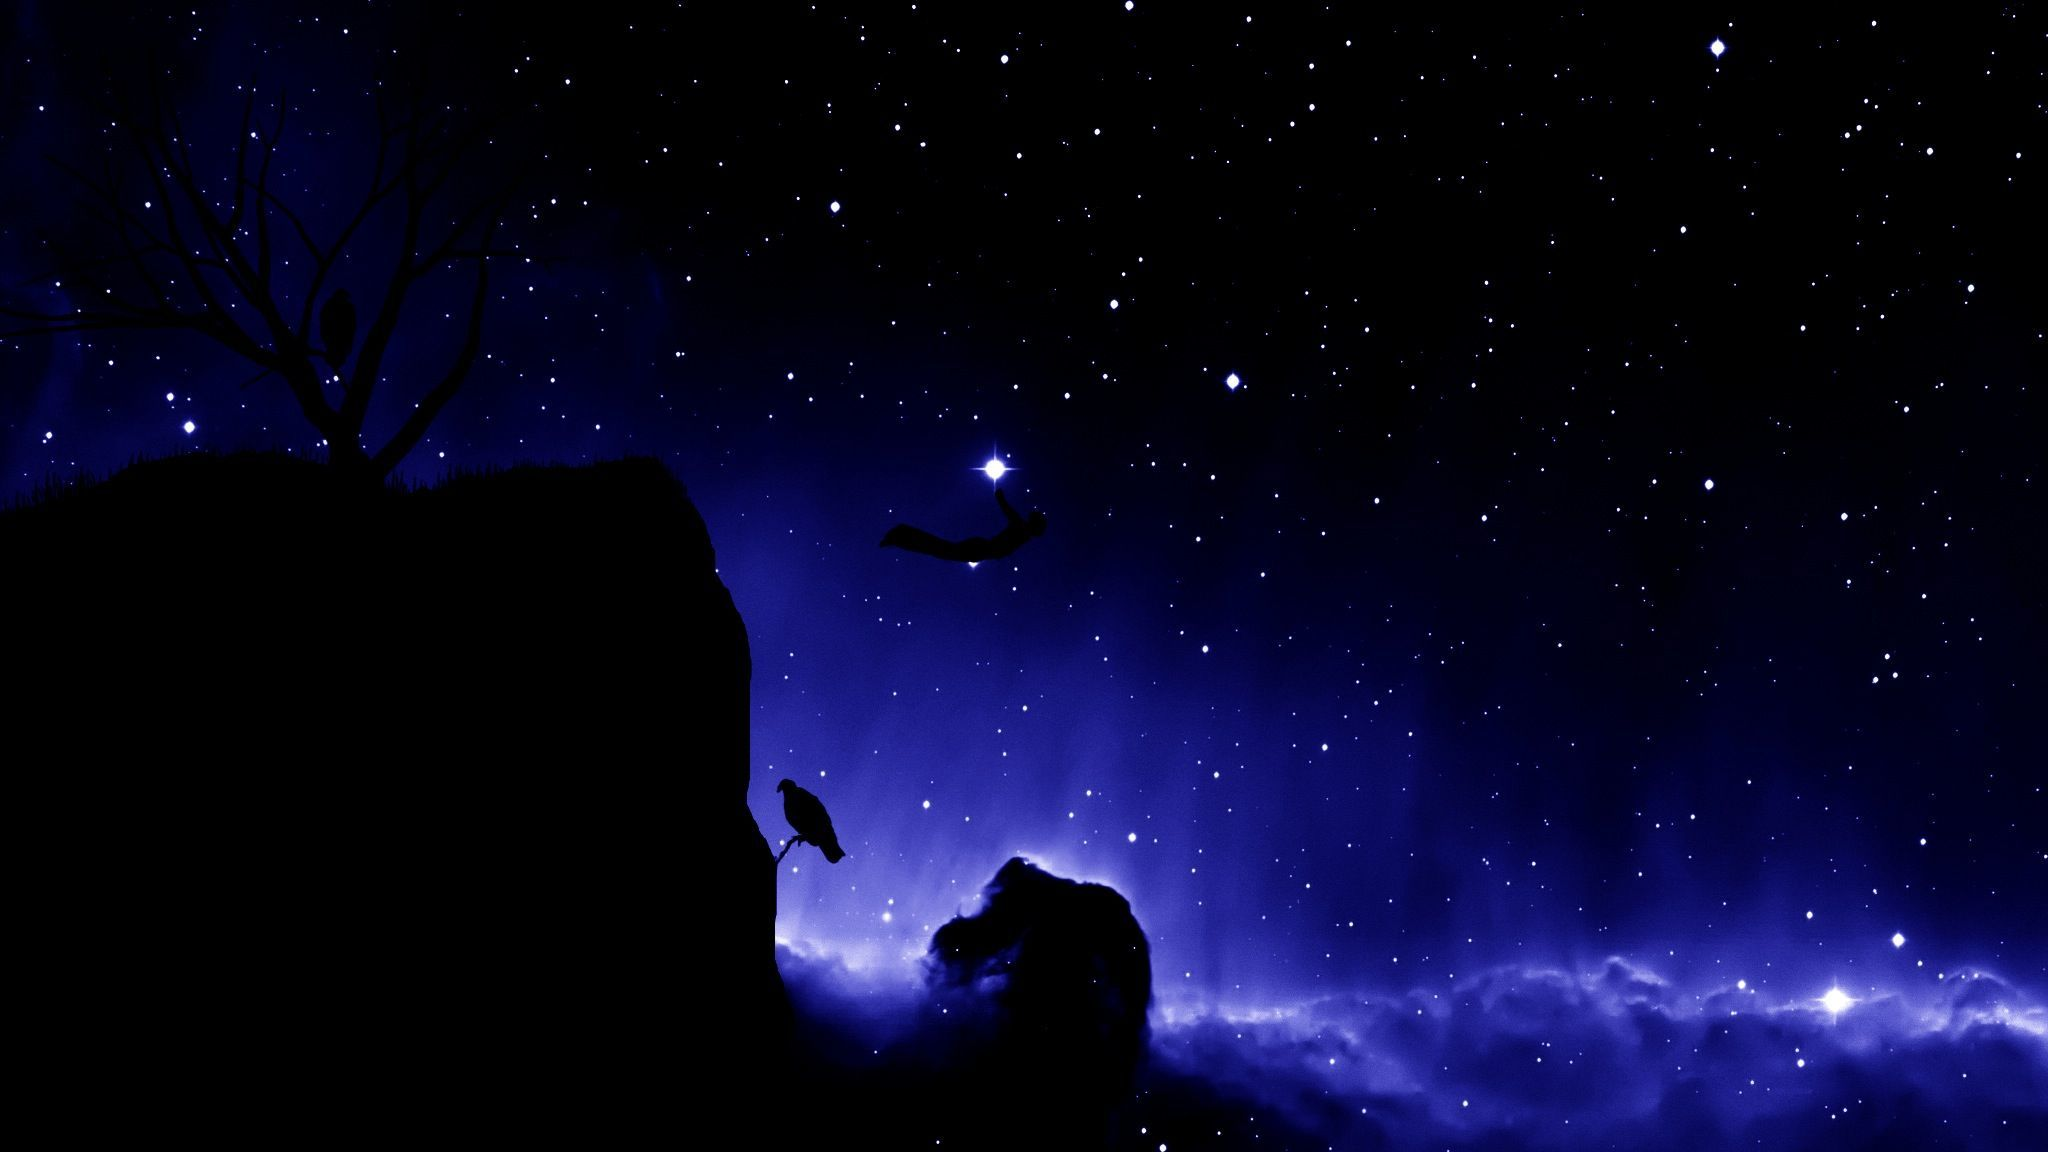 skyscapes night sky HD Wallpaper